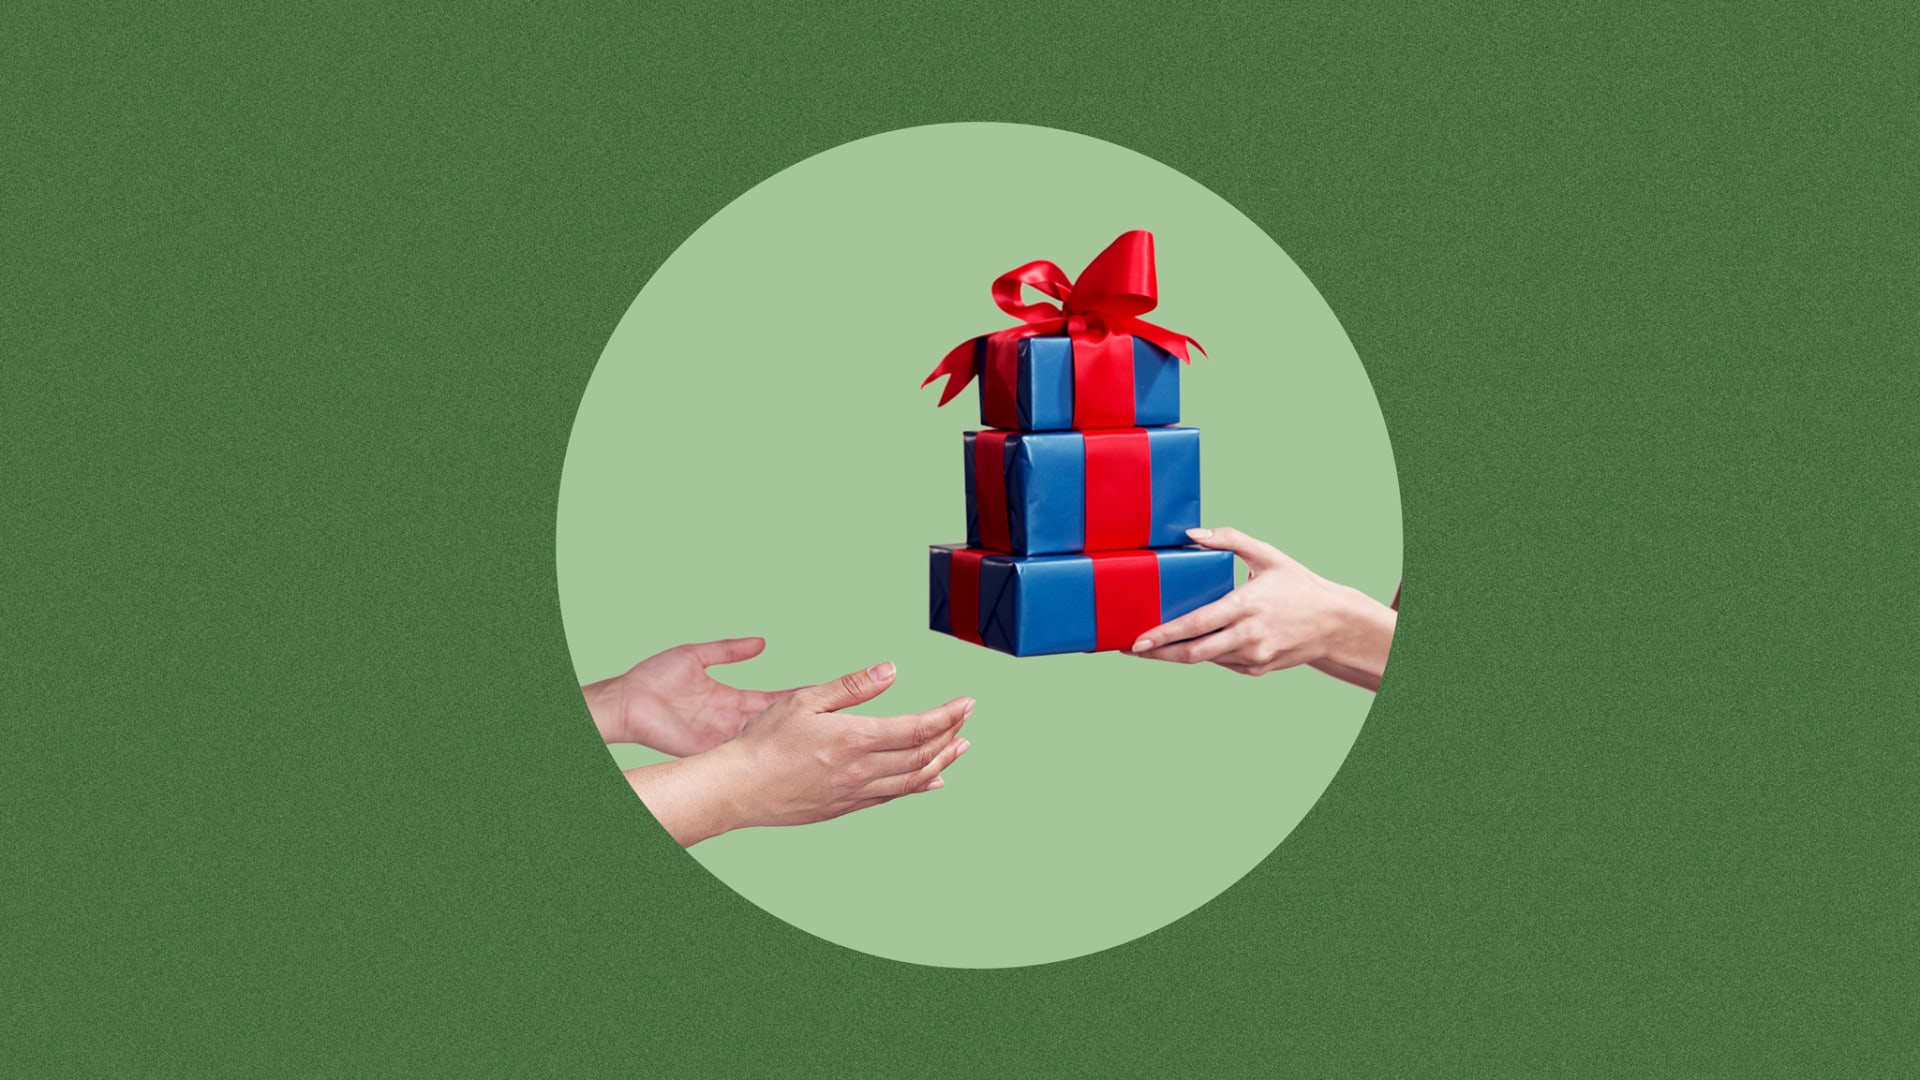 6 Great Gift Ideas for Your Team